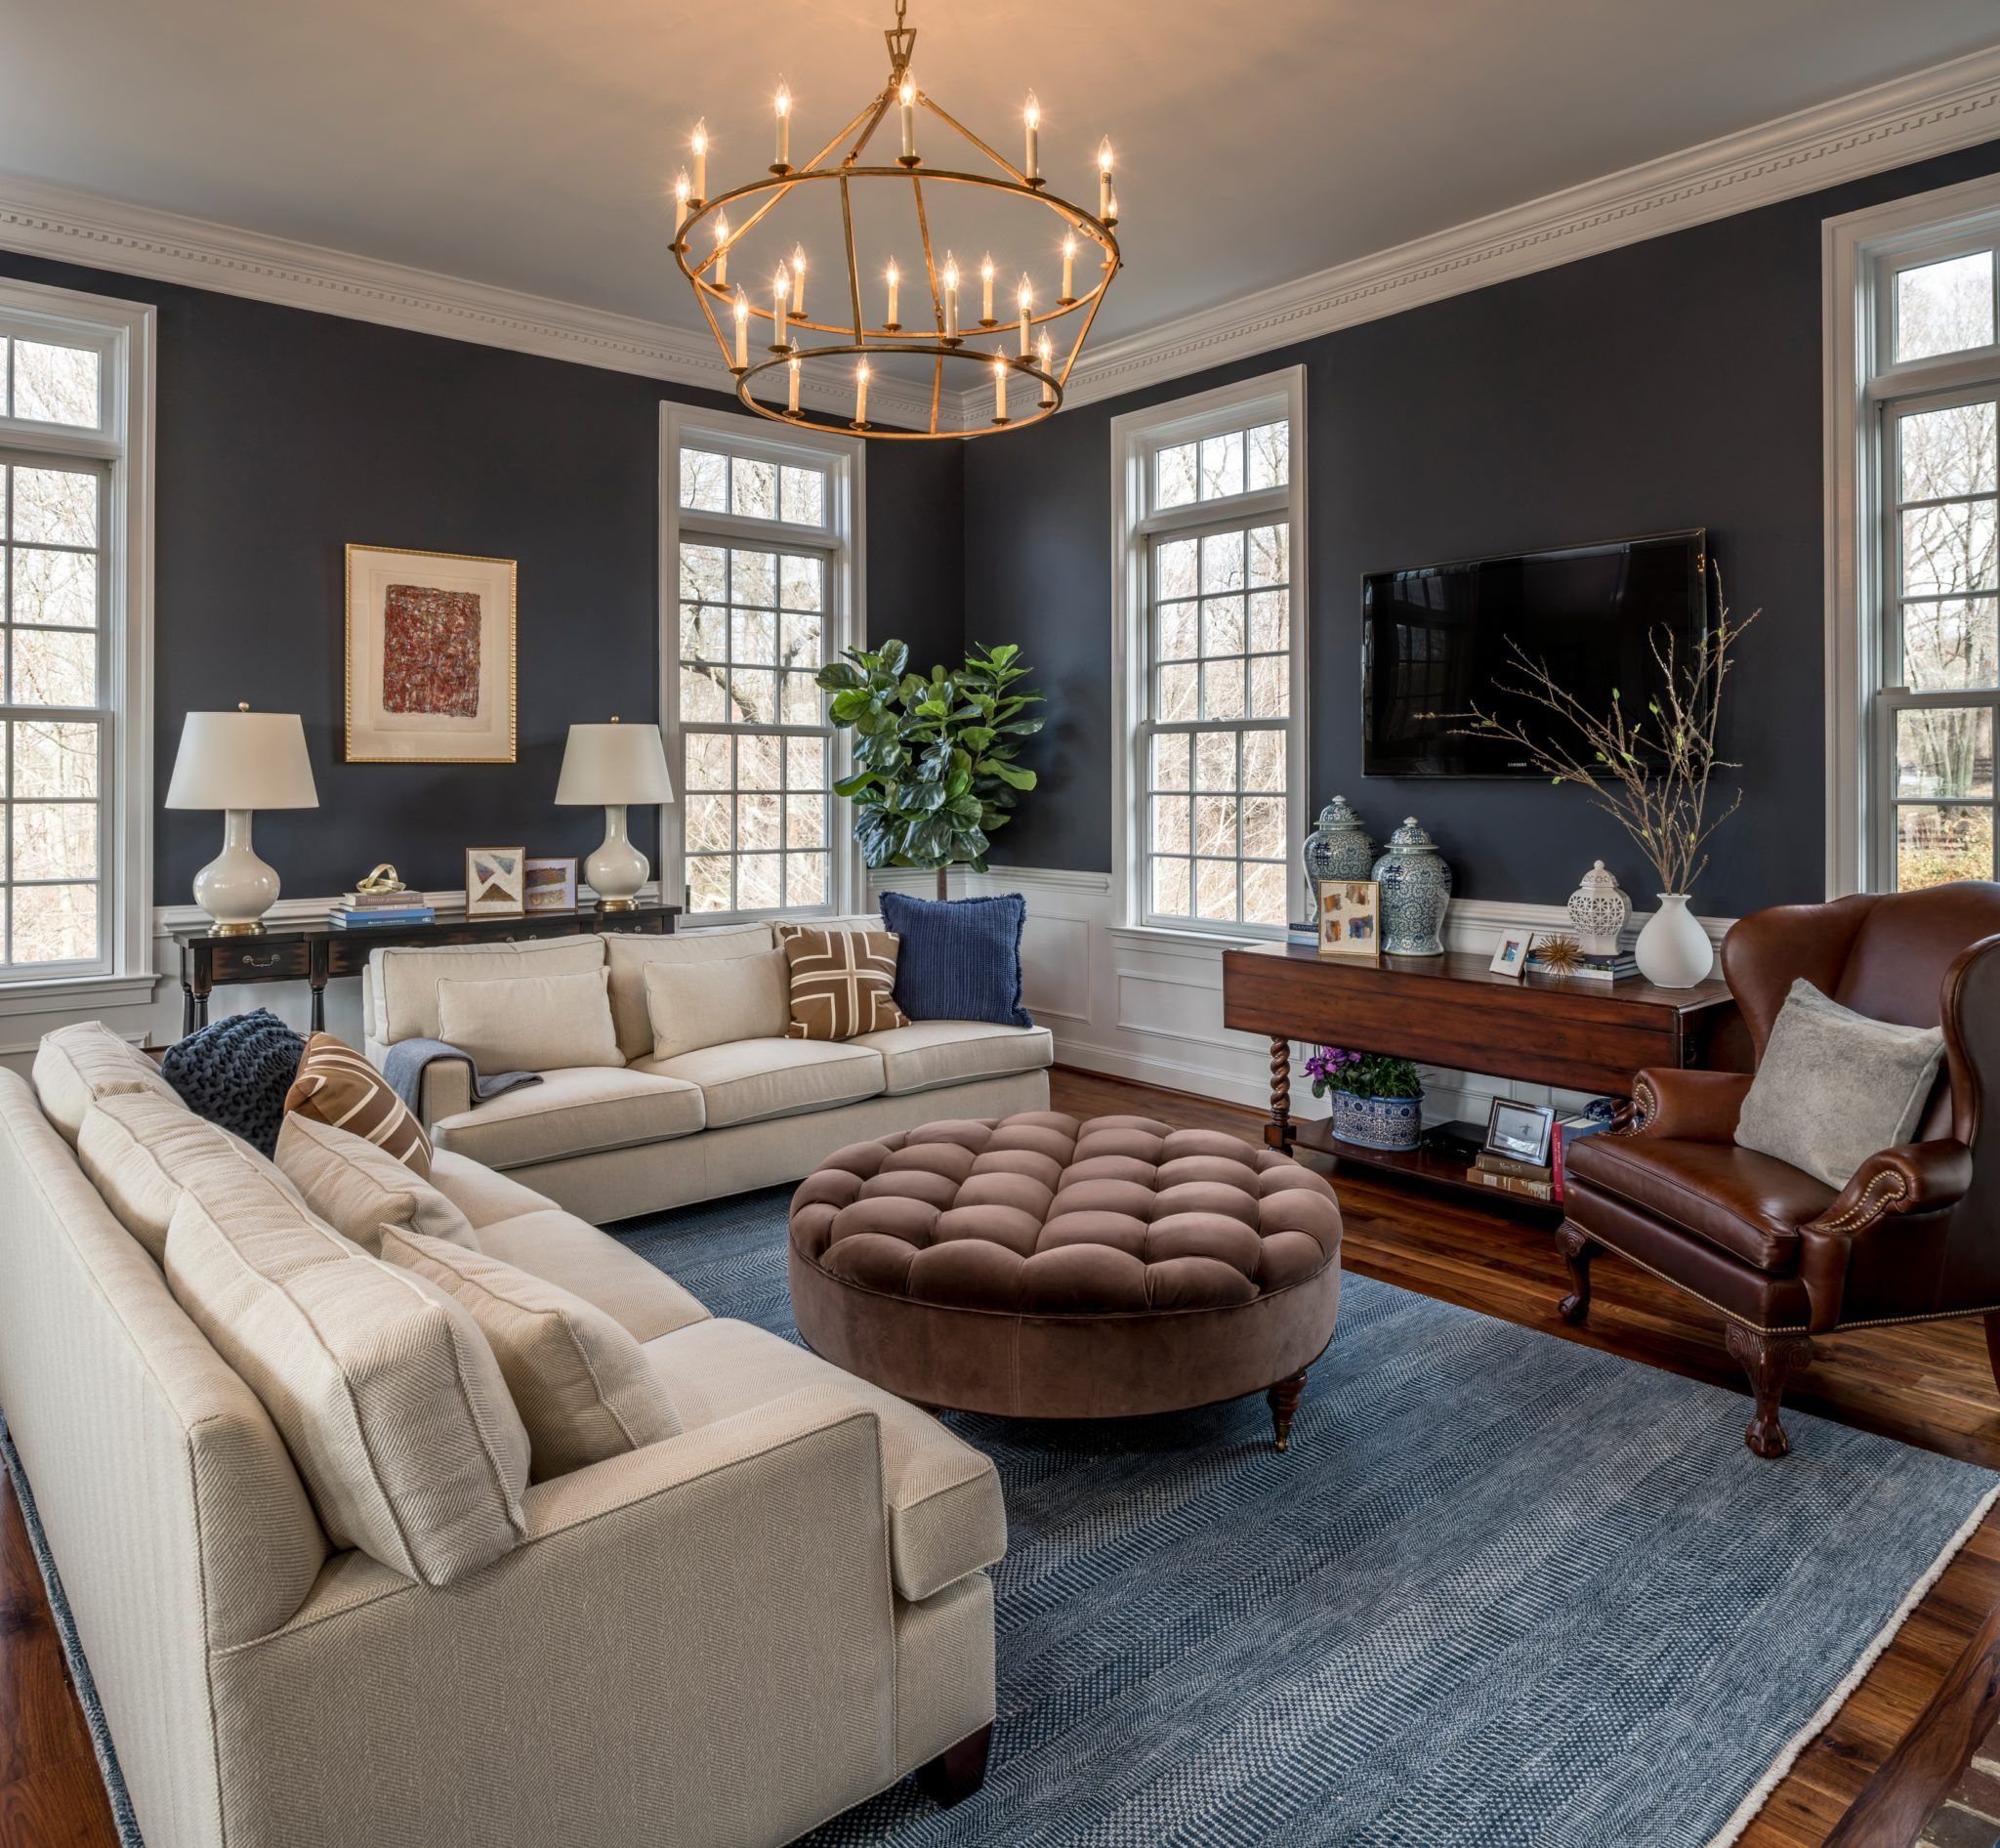 Luxurious Navy Living Rooms - Chairish Blog in 2020 | Navy ...